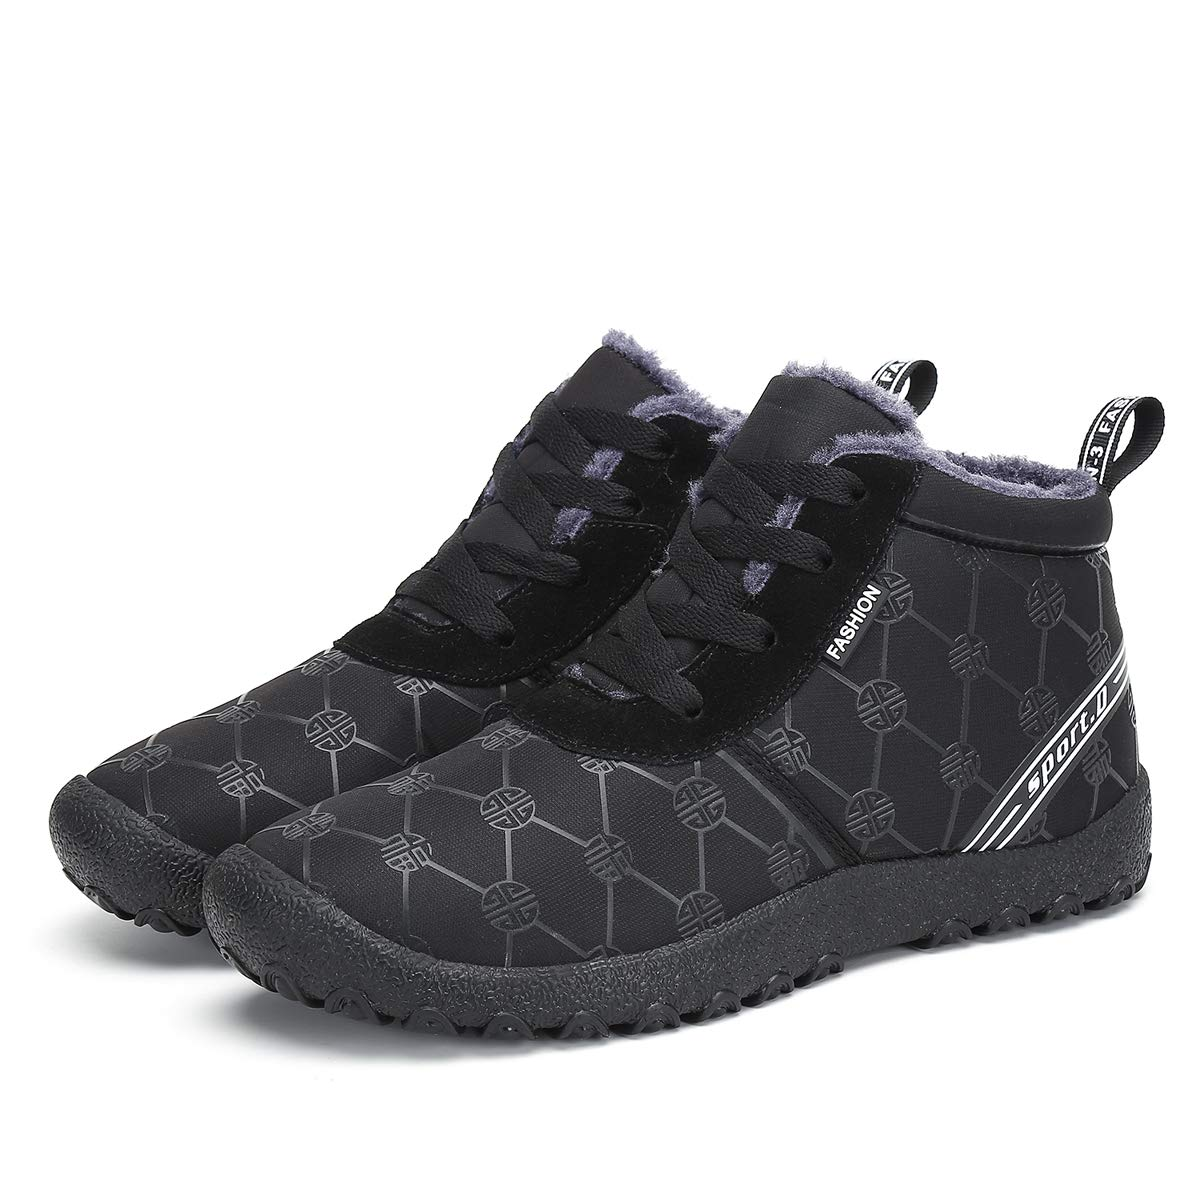 Black1 Leaproo Mens Winter shoes Women Snow Boots Warm Fur Lined Sneakers Anti-Slip Ankle Booties Outdoor shoes